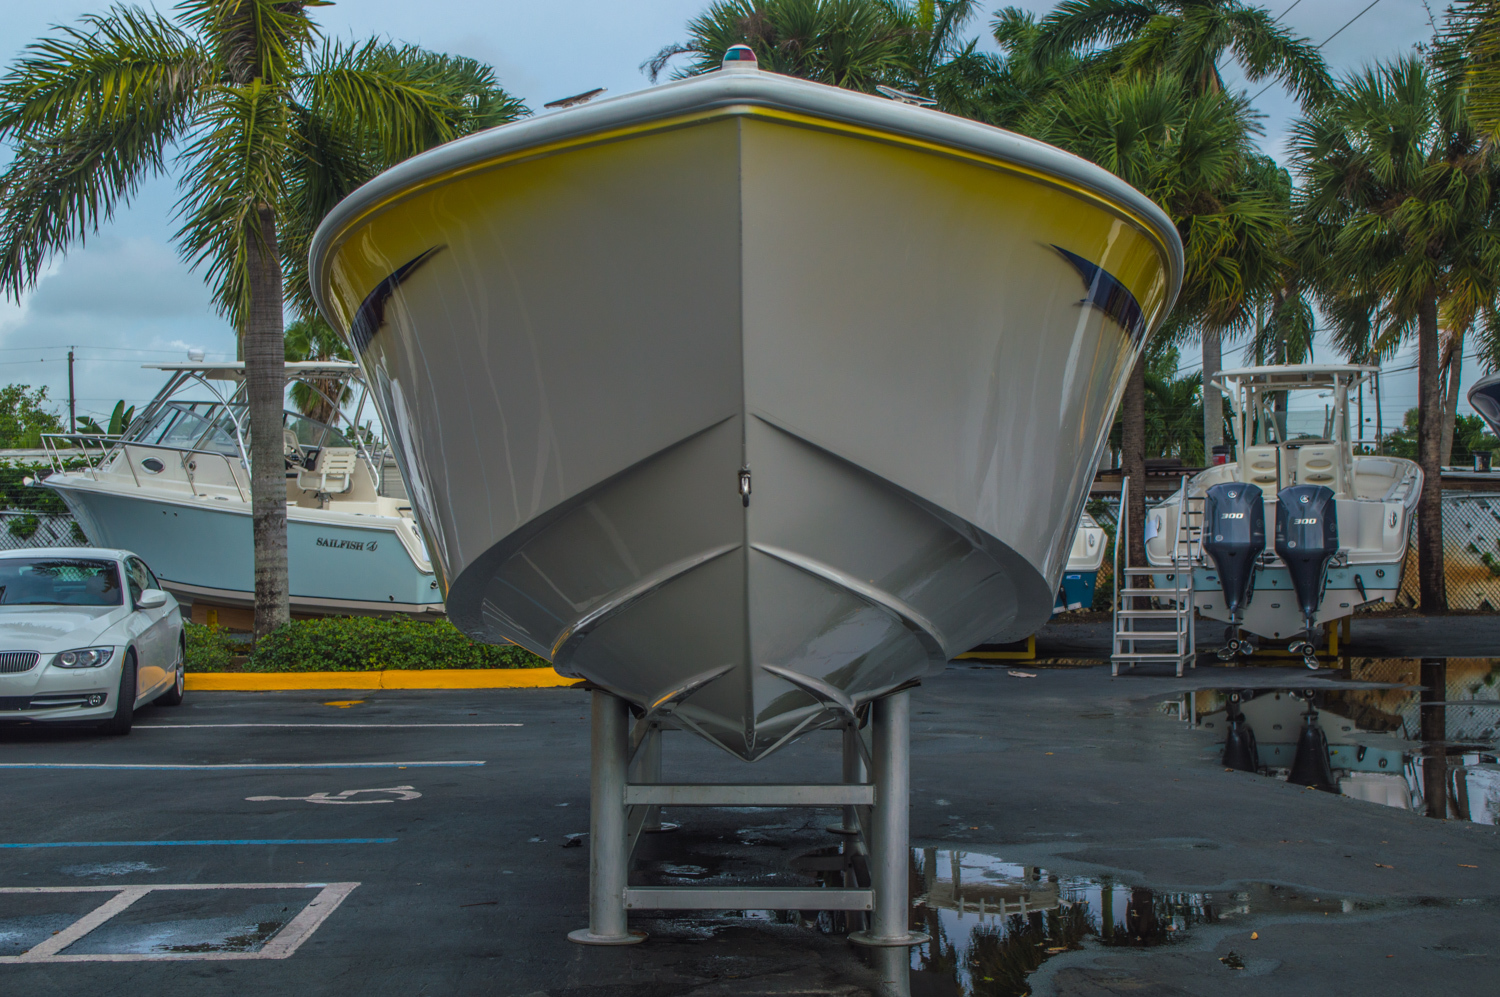 Thumbnail 6 for Used 2001 Sonic 31 SS boat for sale in West Palm Beach, FL